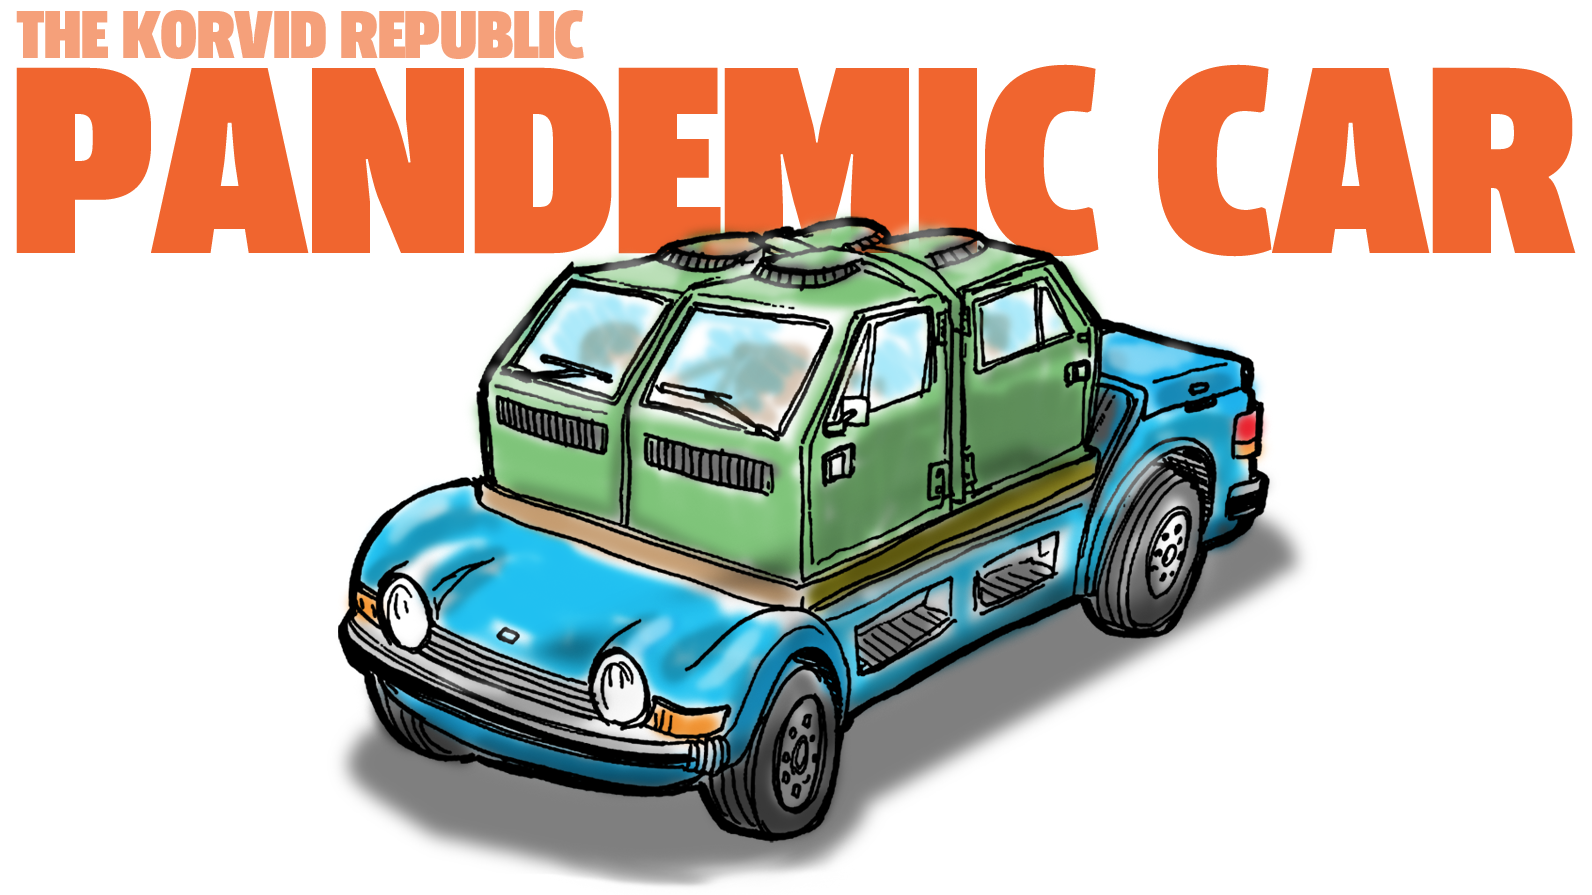 Imaginary Car From An Imaginary Country: The Korvid Republic Pandemic Car